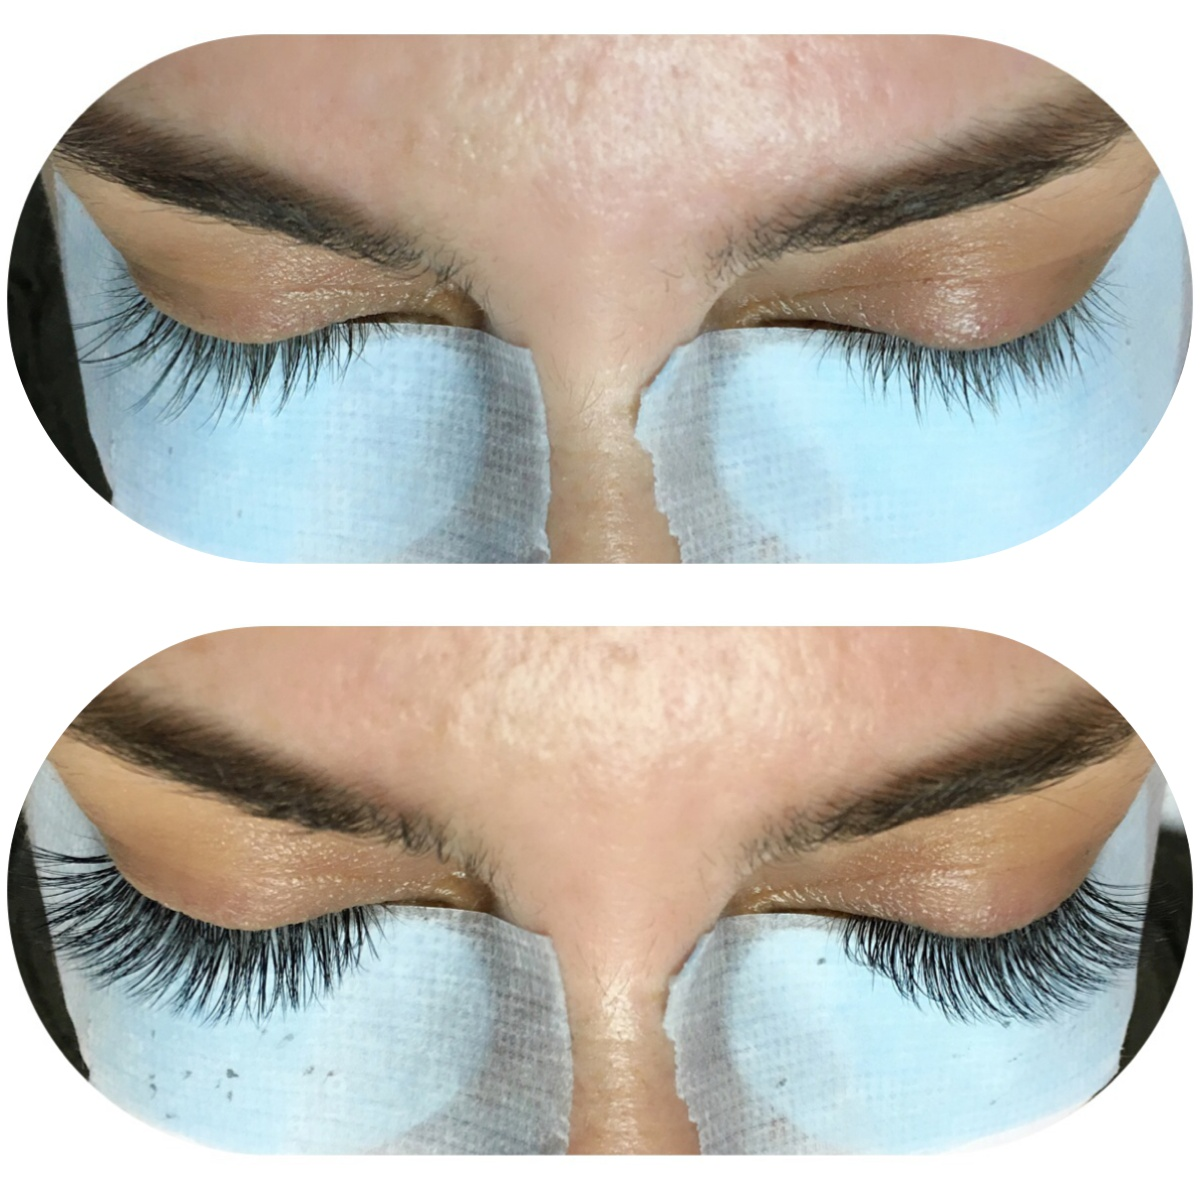 Before & After Volume Lashes